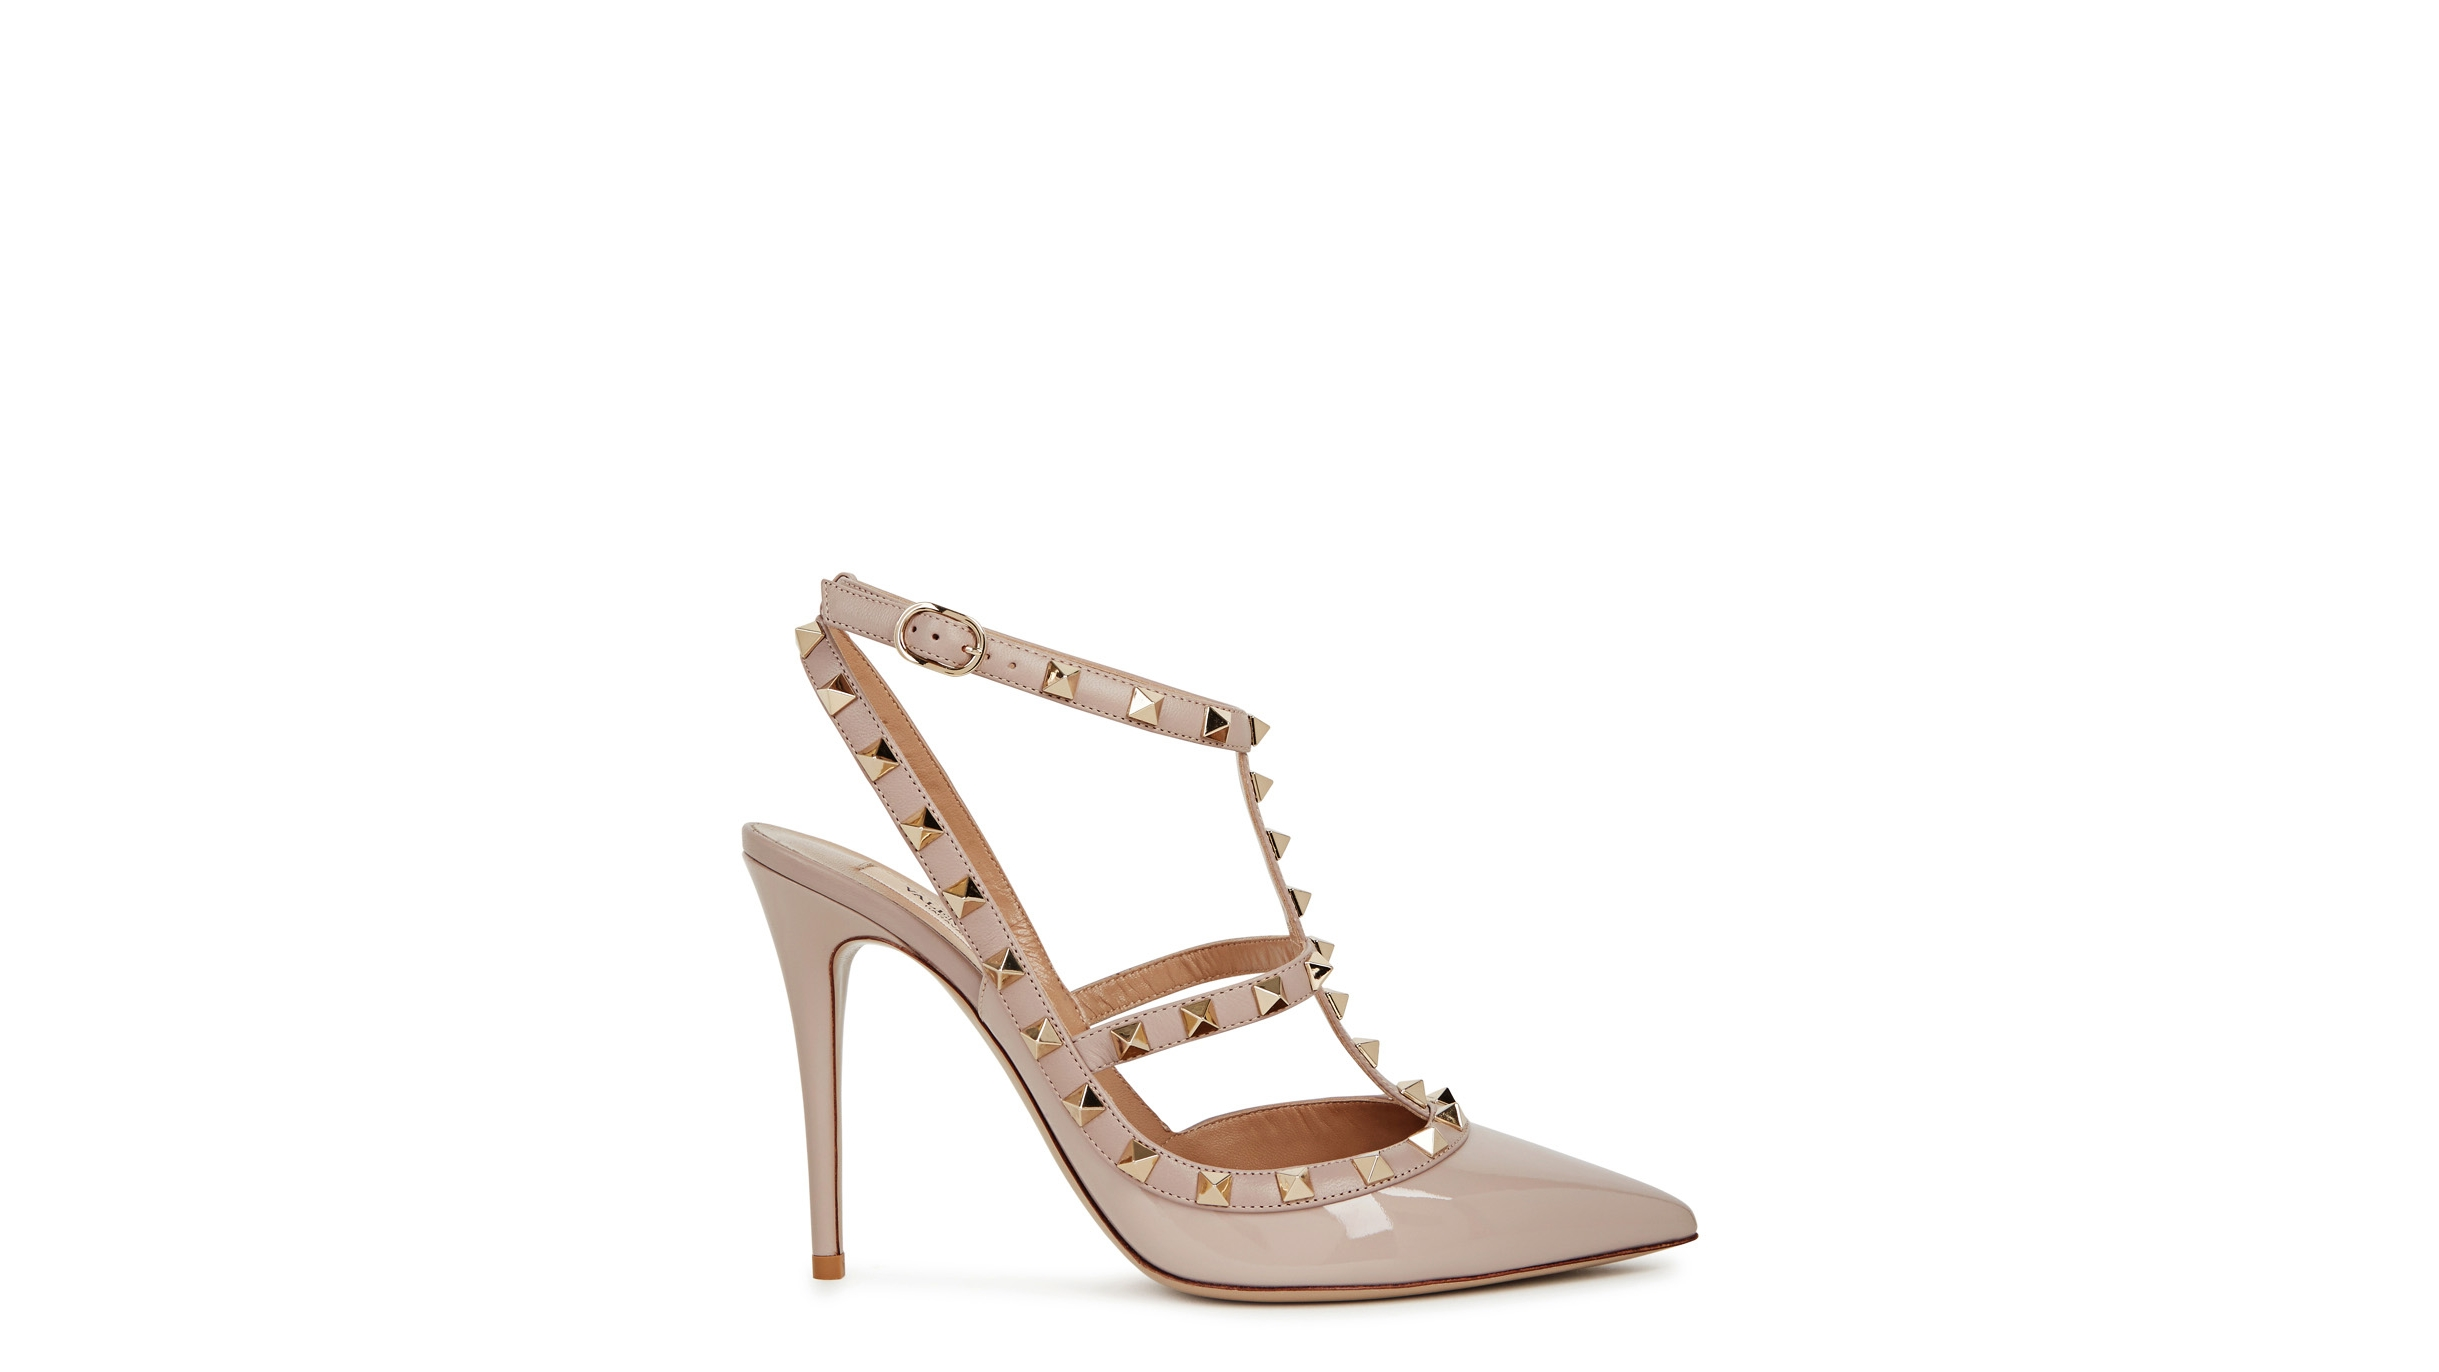 93f7b77b775d Valentino Garavani Rockstud 100 blush patent leather pumps - Harvey ...